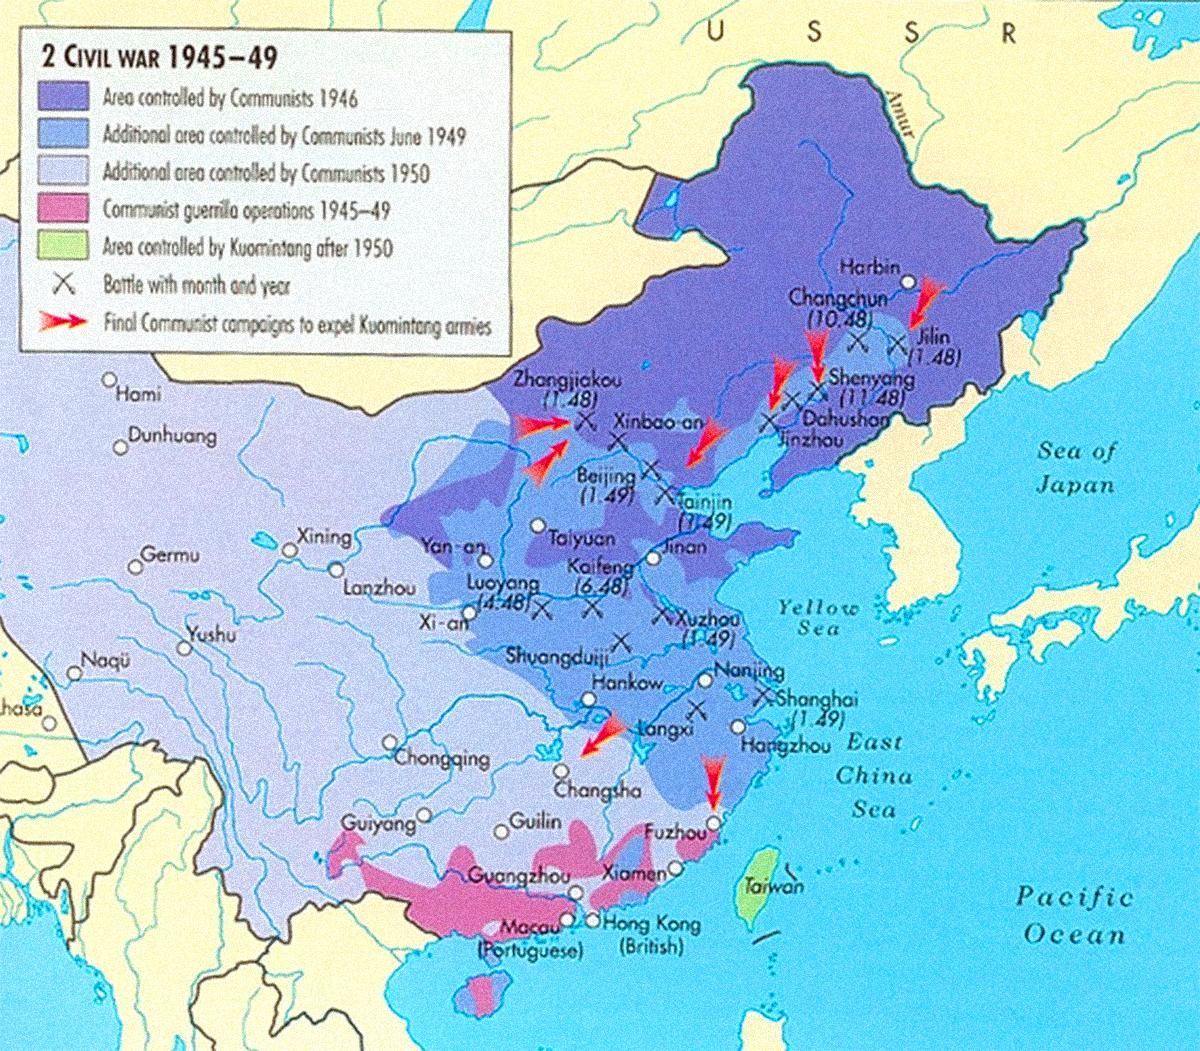 Map of the chinese civil war from 1945 to 1949 showing areas map of the chinese civil war from 1945 to 1949 showing areas controlled by the communists over time and the final position of the nationalists in taiwan gumiabroncs Image collections